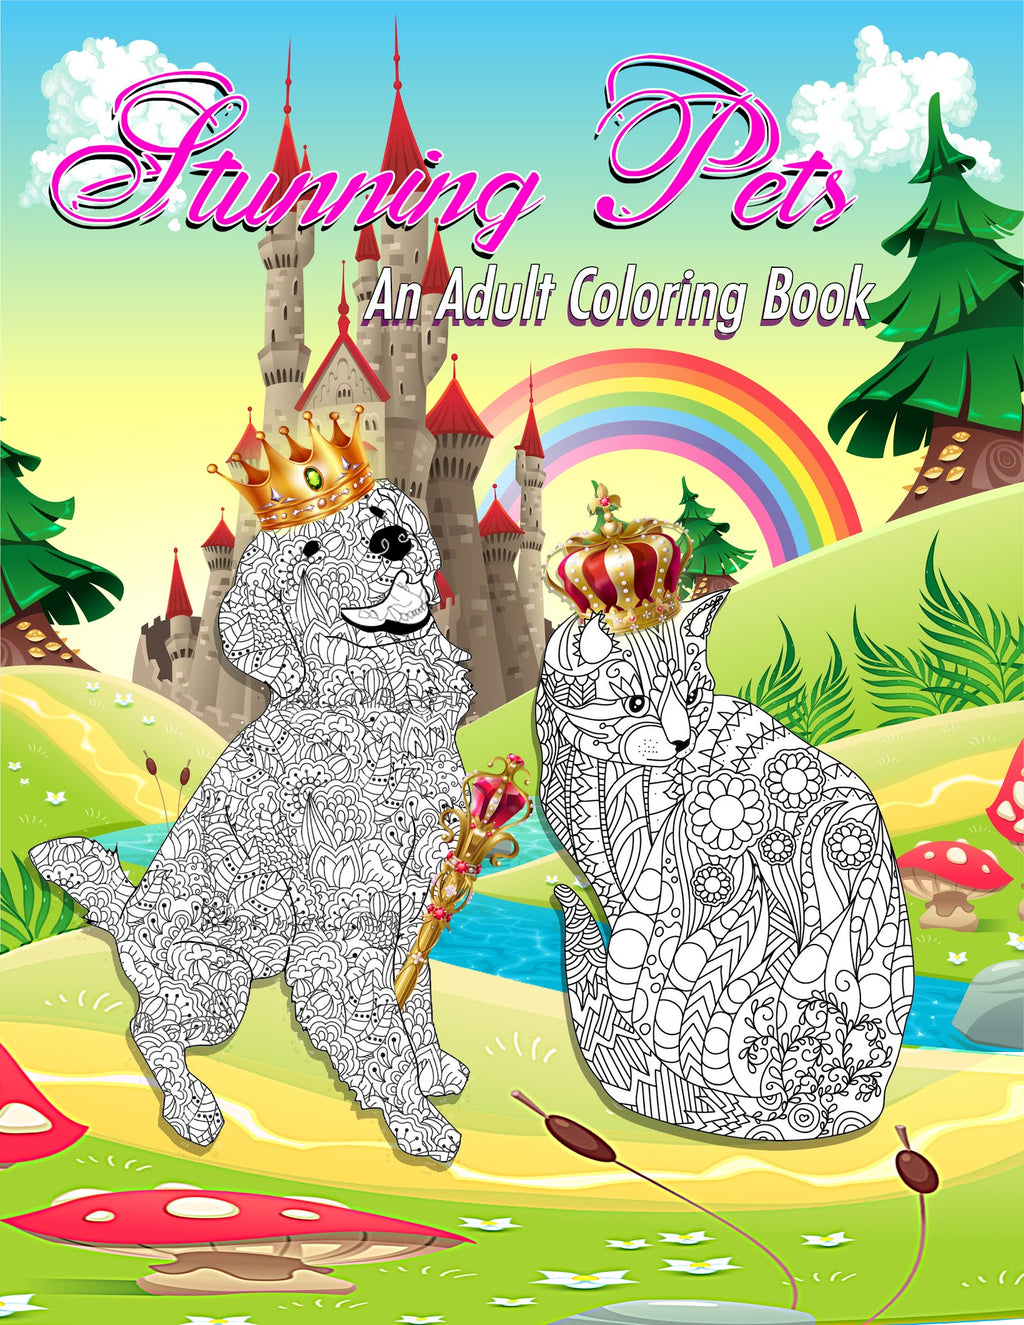 Stunning Pets: Adult's Coloring Book